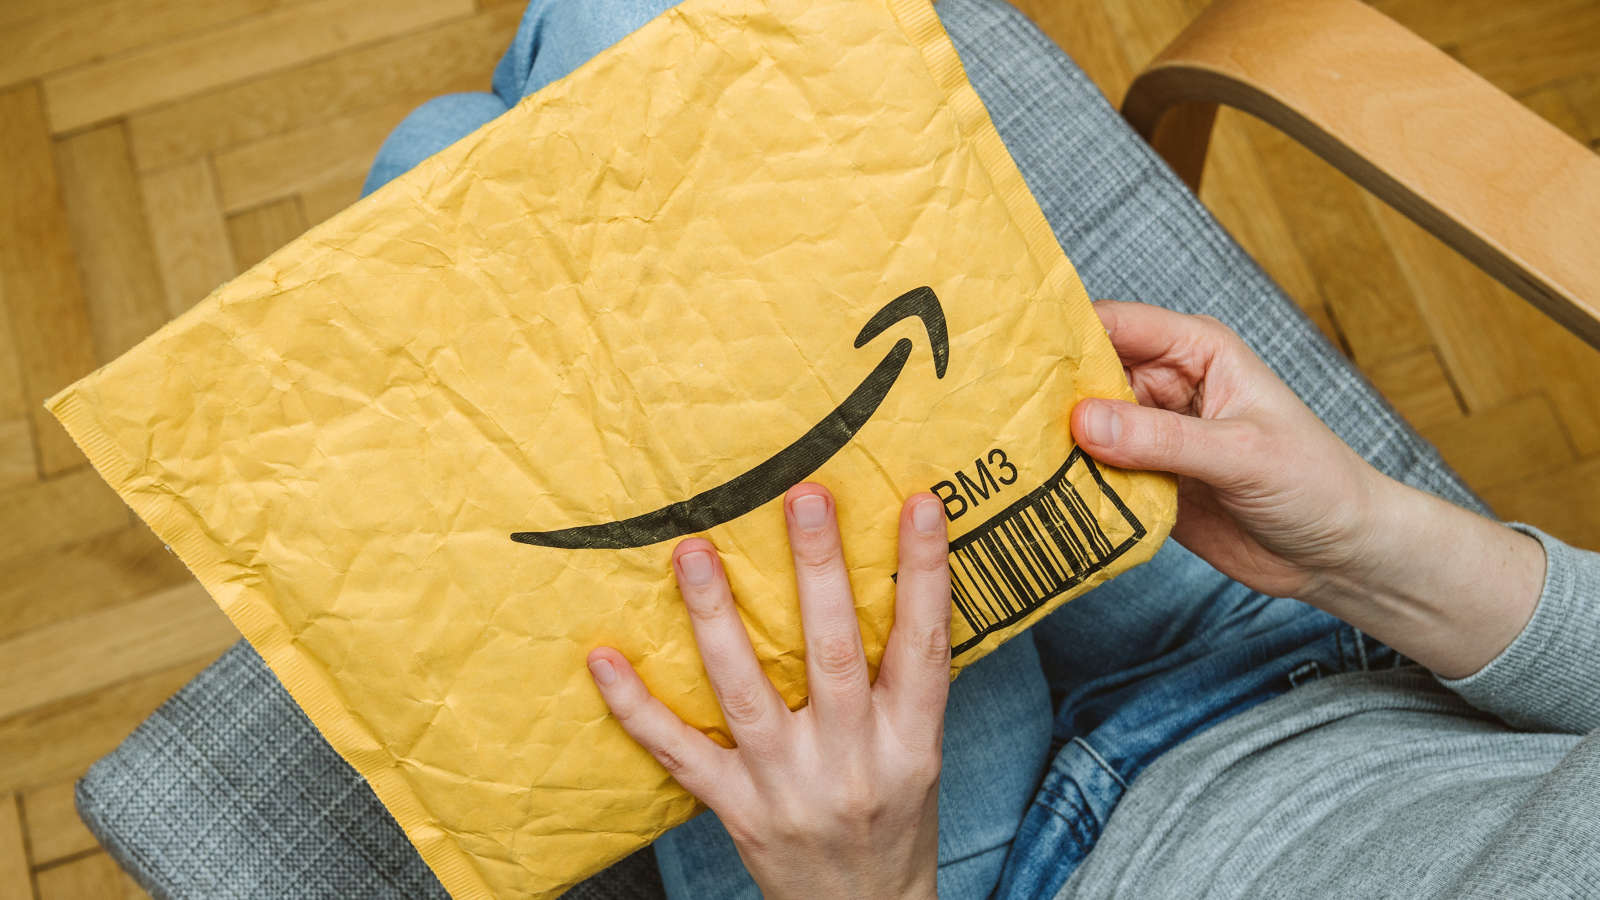 These Stores Will Box Your Amazon Returns for Free